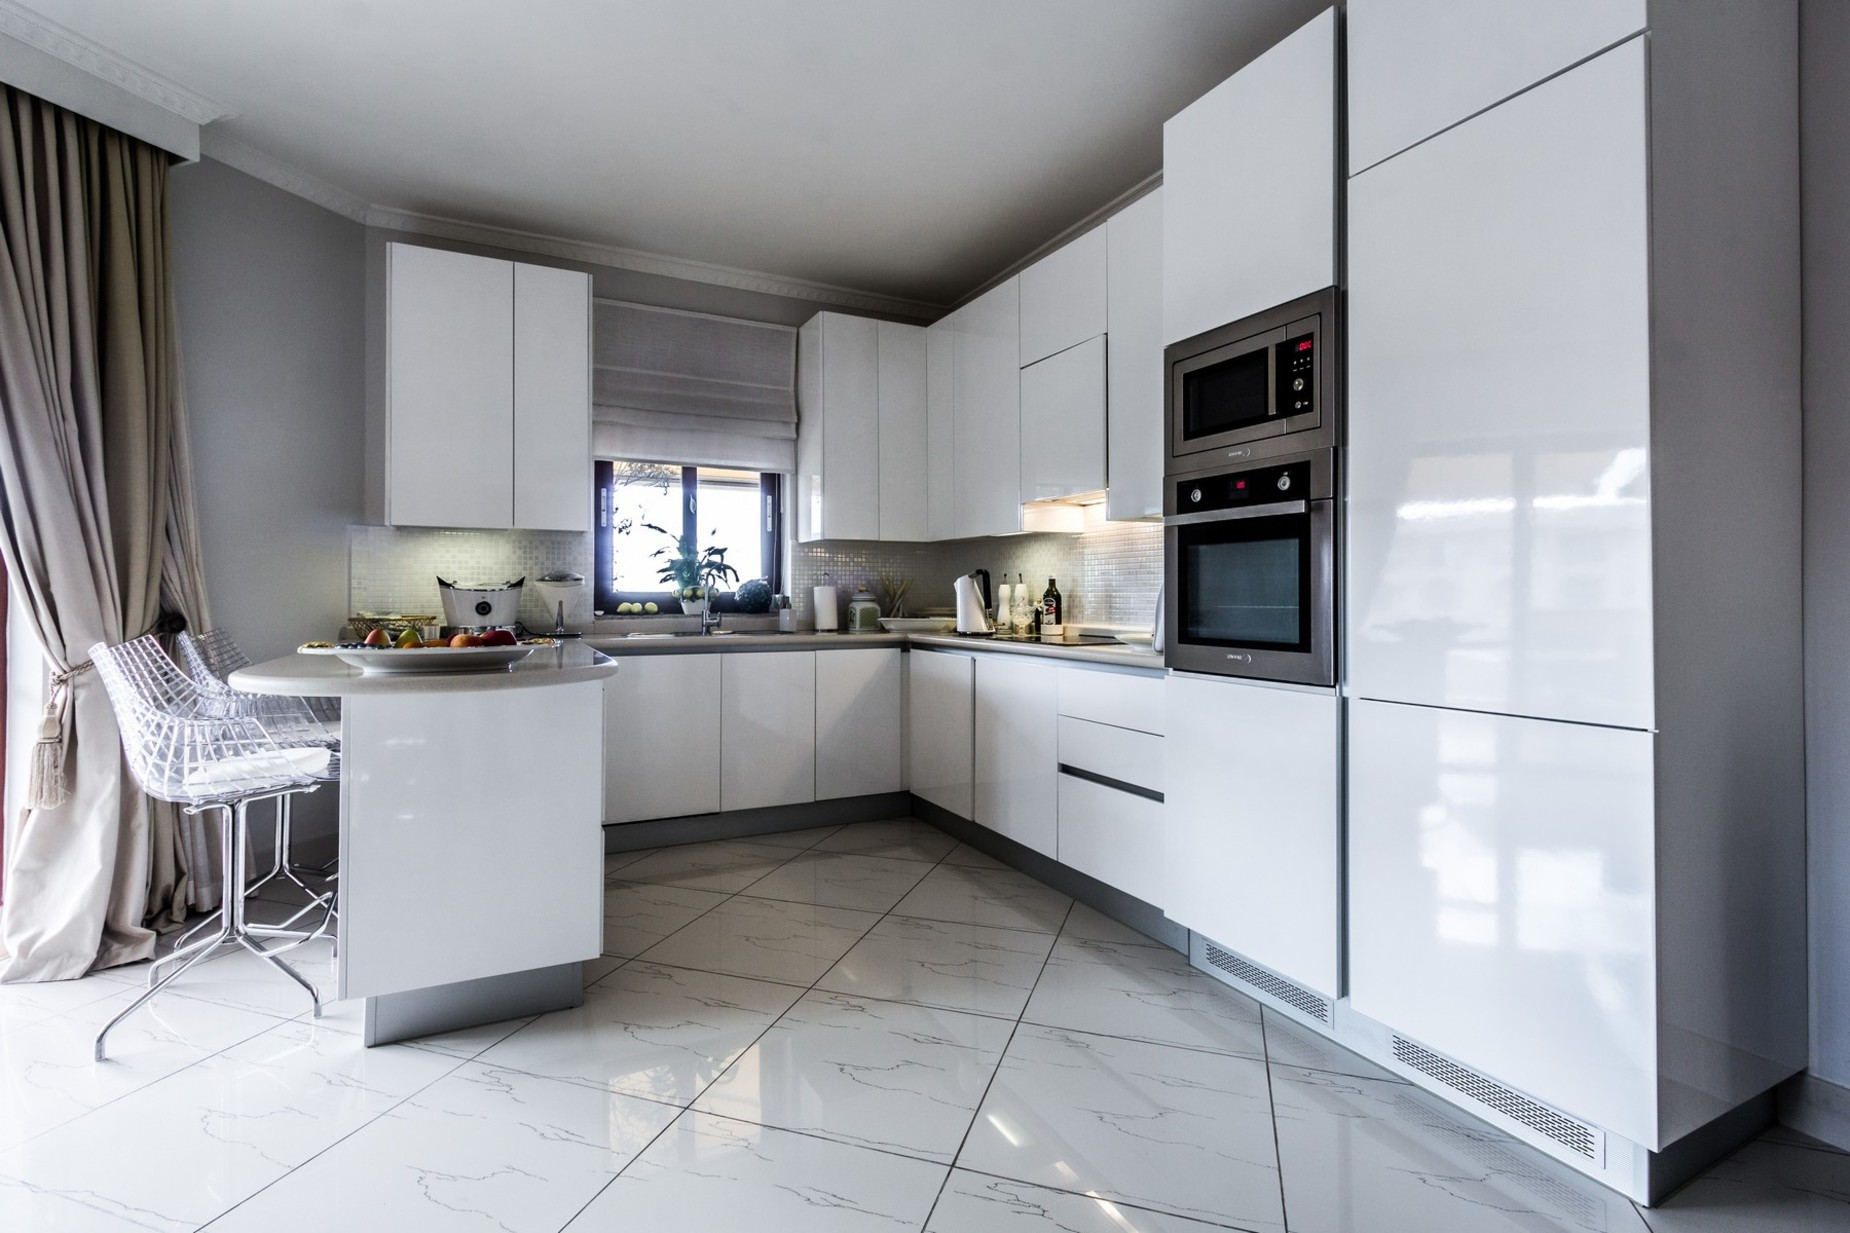 2 bed Apartment For Sale in San Lawrenz, San Lawrenz - thumb 5